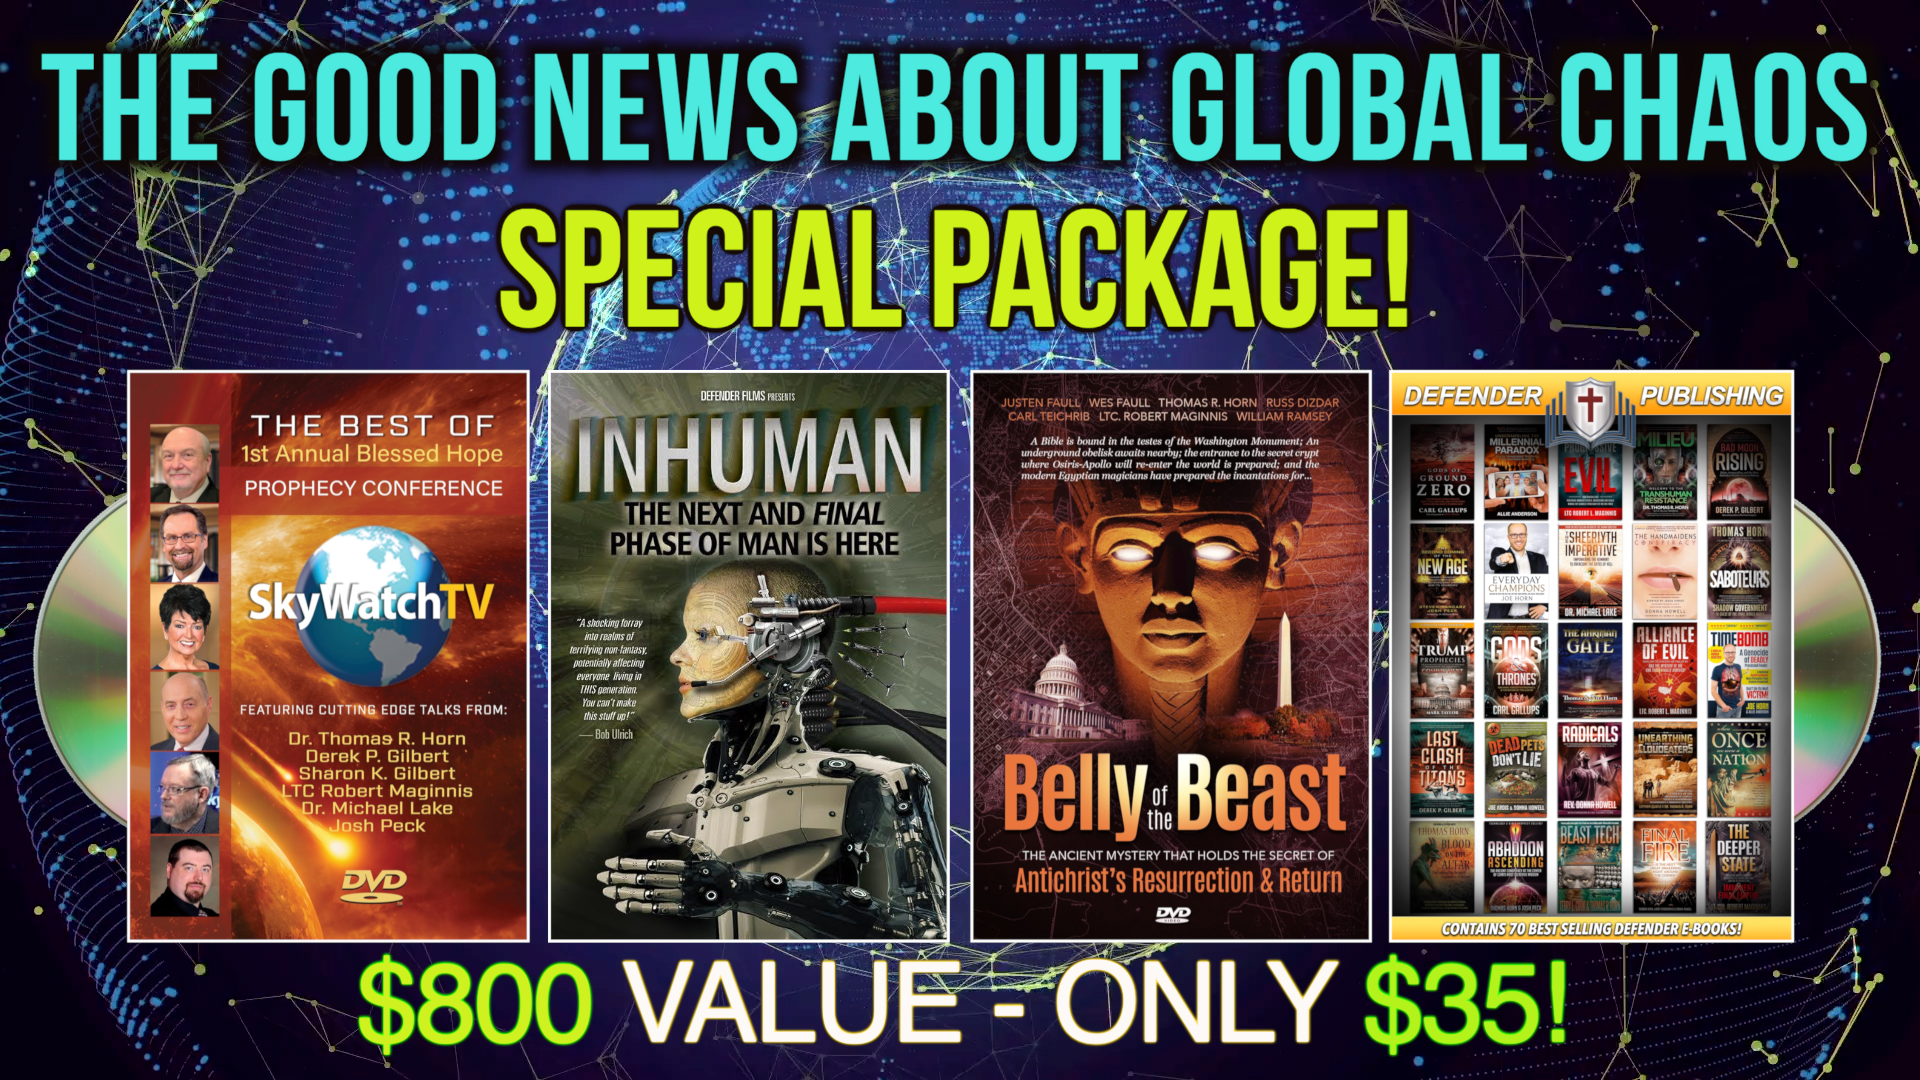 "FREE! GET THE BESTSELLING DOCUMENTARY ""BELLY OF THE BEAST"" FREE IN OFFER FOR LIMITED TIME!"